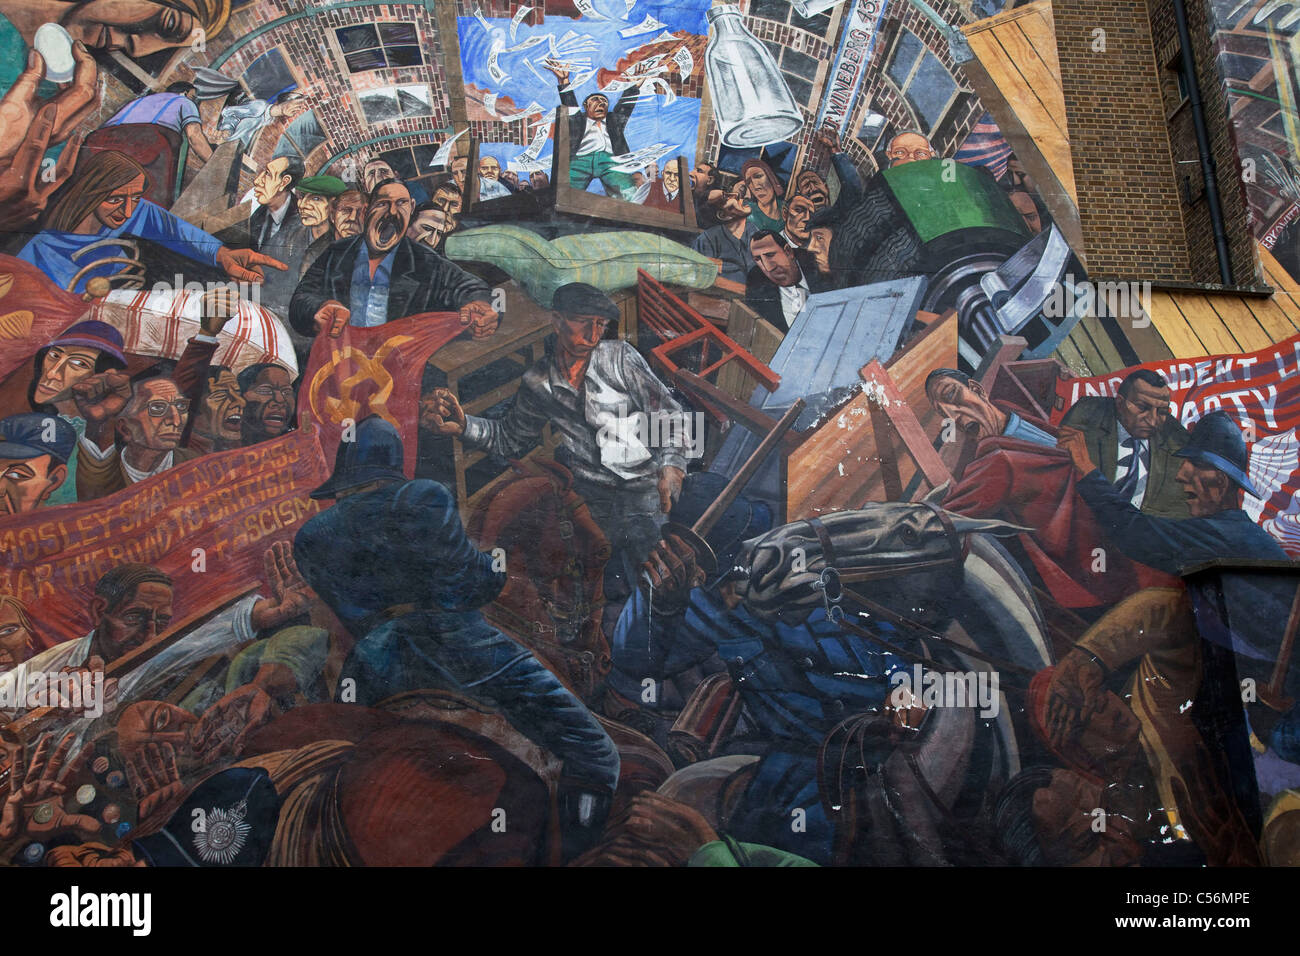 Mural to The Battle of Cable Street on Cable Street in East London. - Stock Image